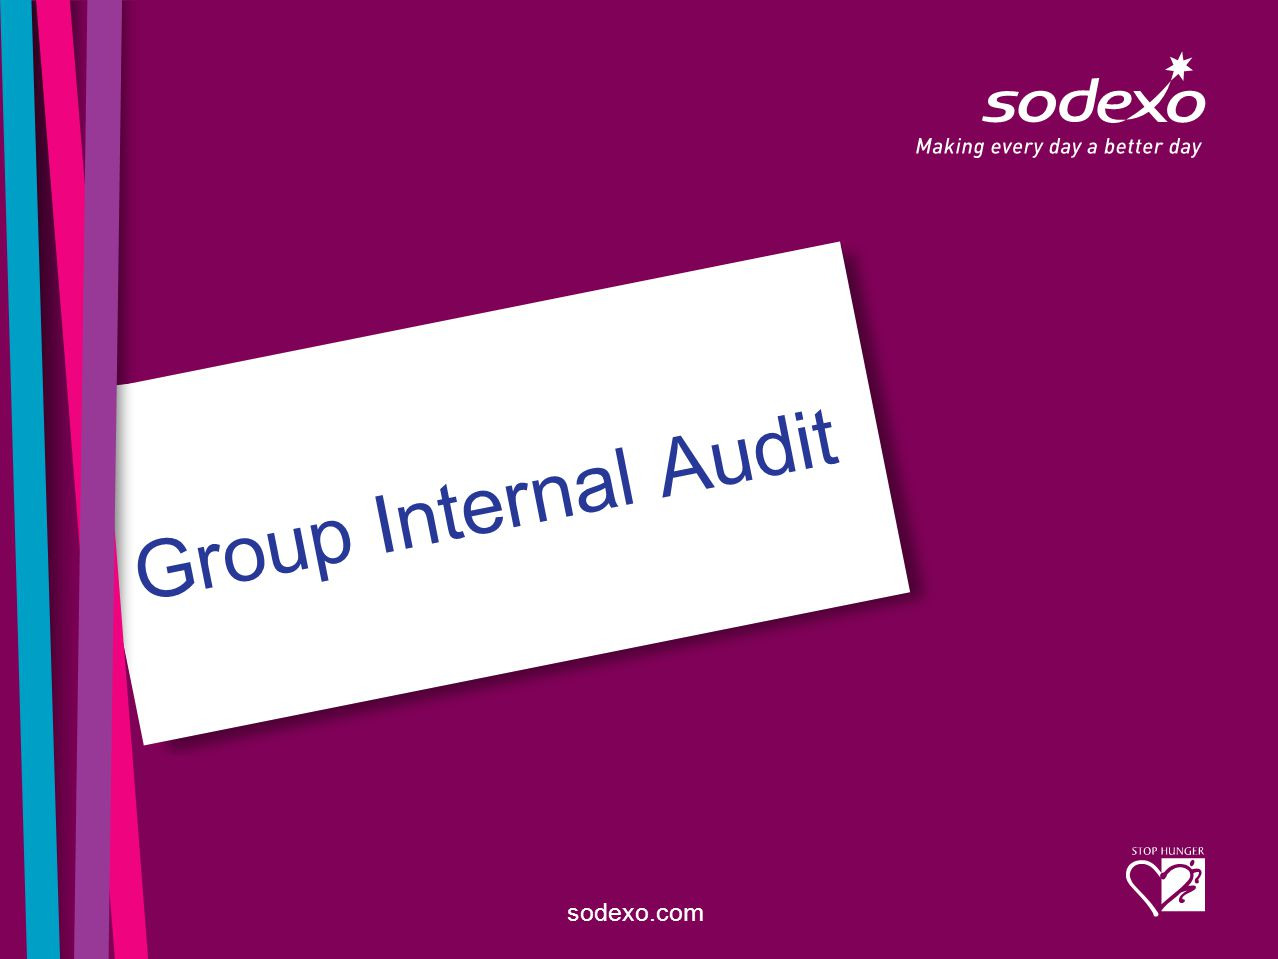 sodexo.com Group Internal Audit